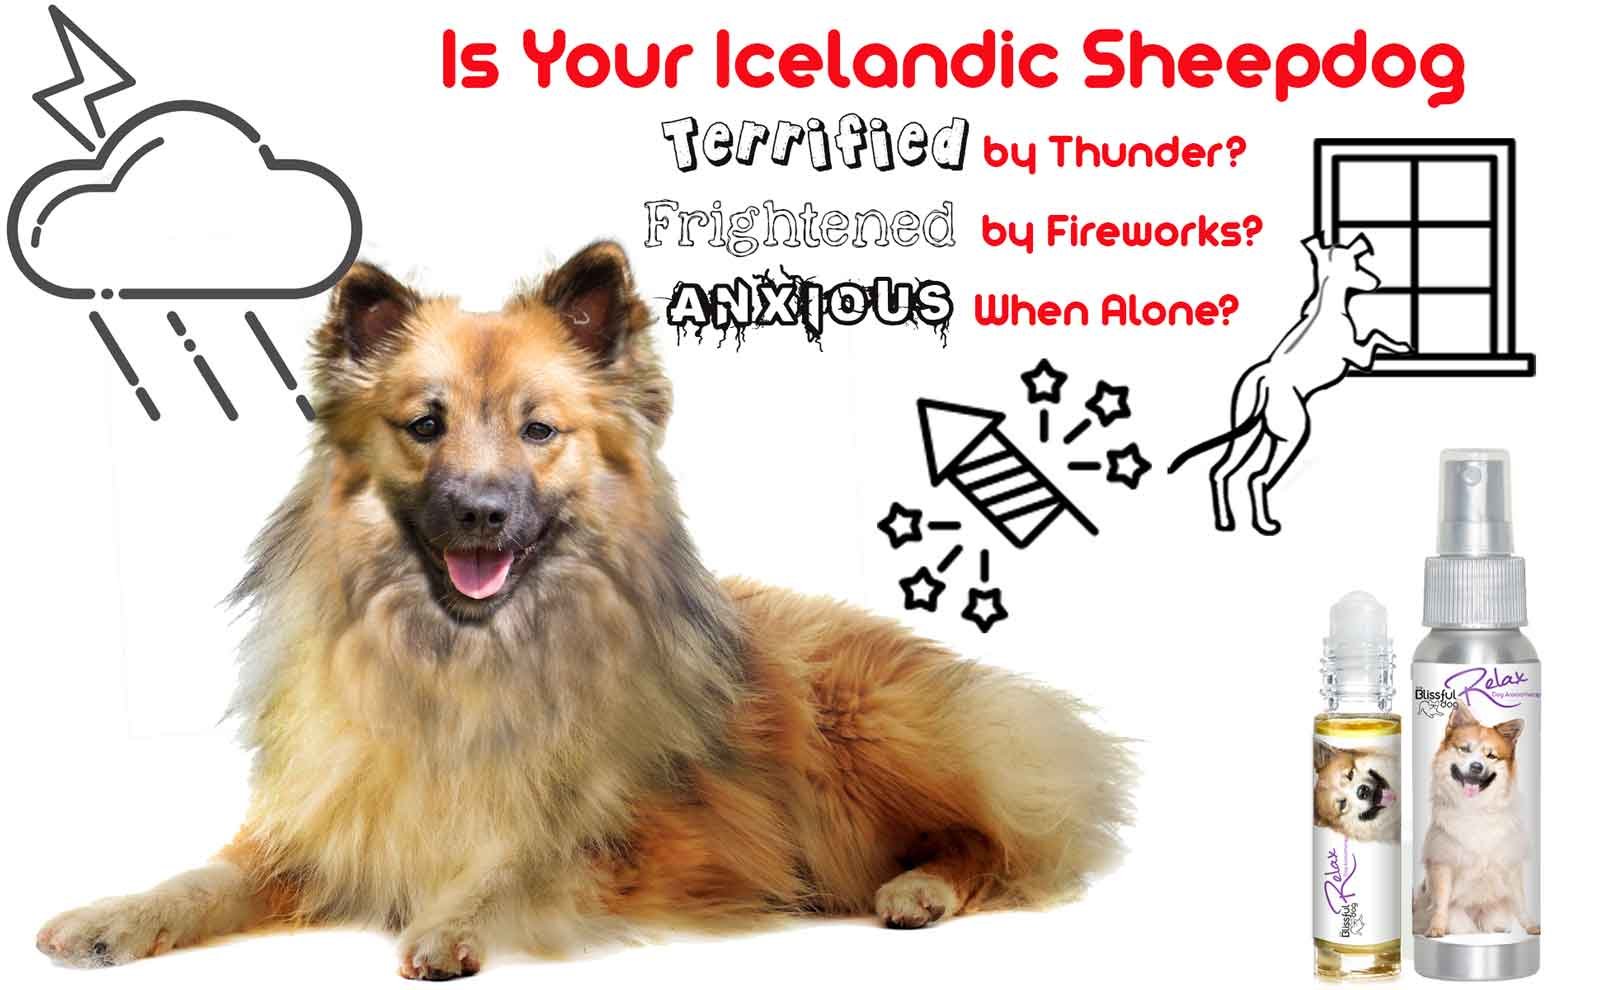 Icelandic Sheepdog calming